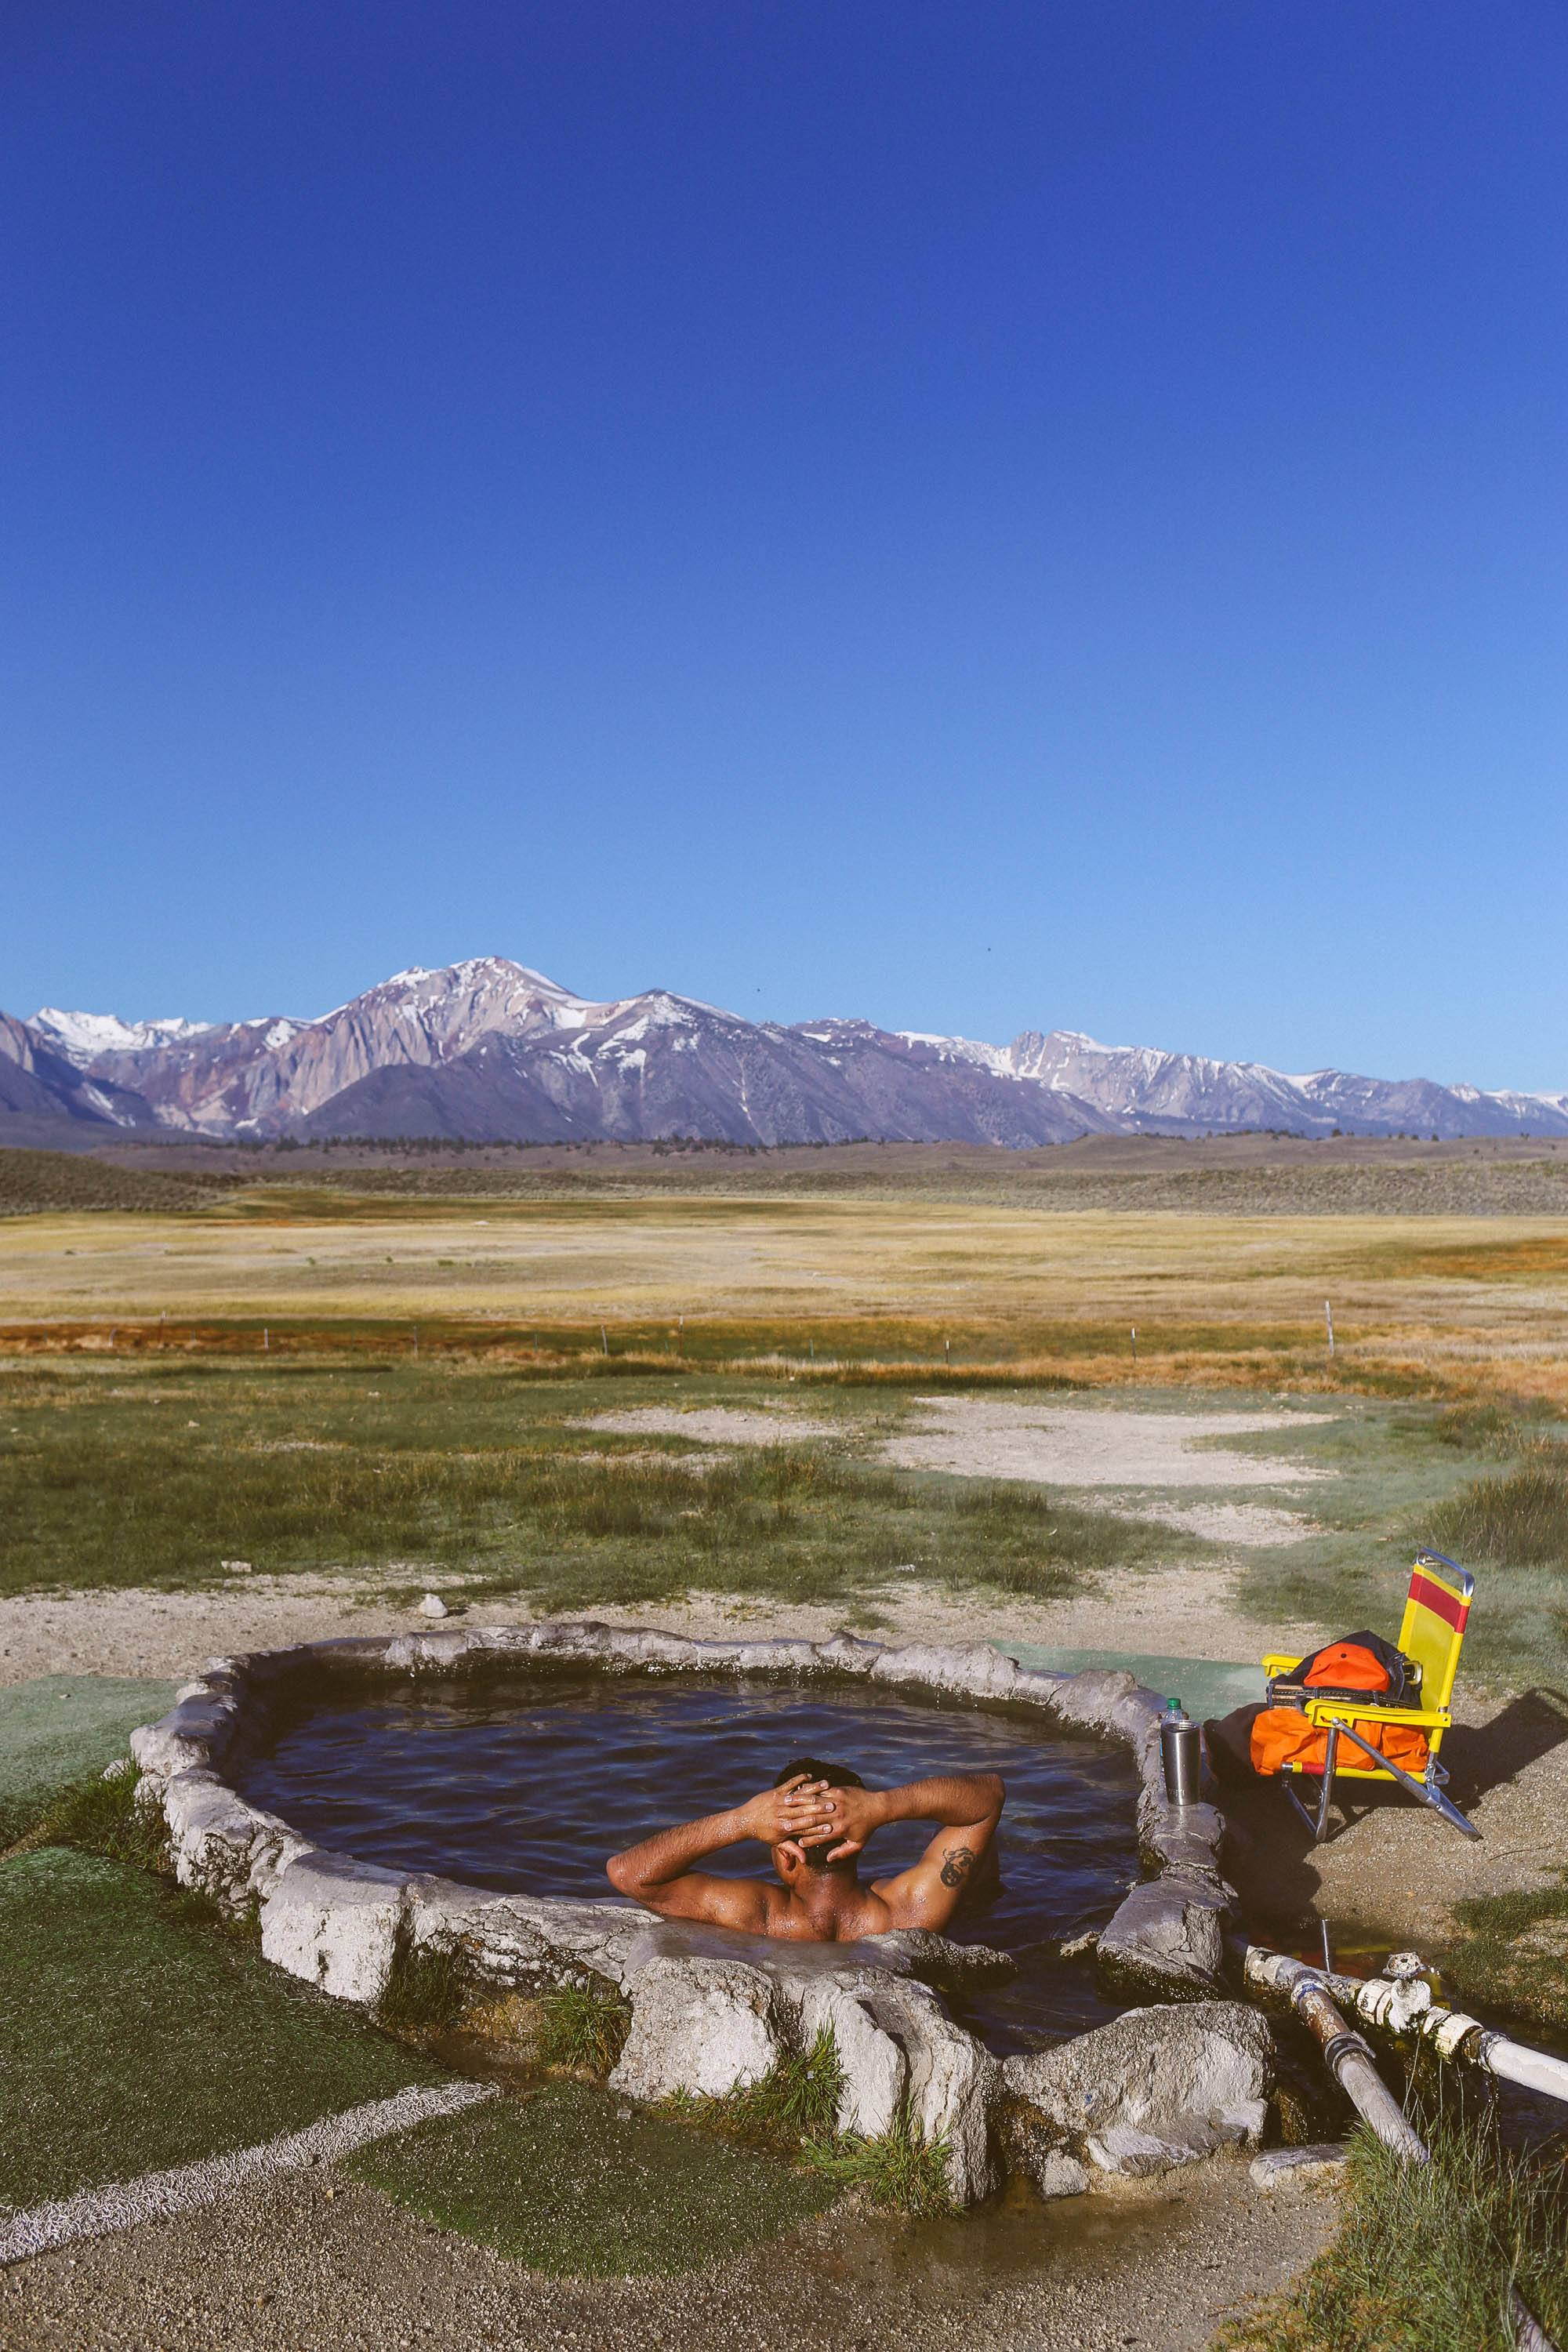 man in hot spring looking out over the plains, mountains in the background